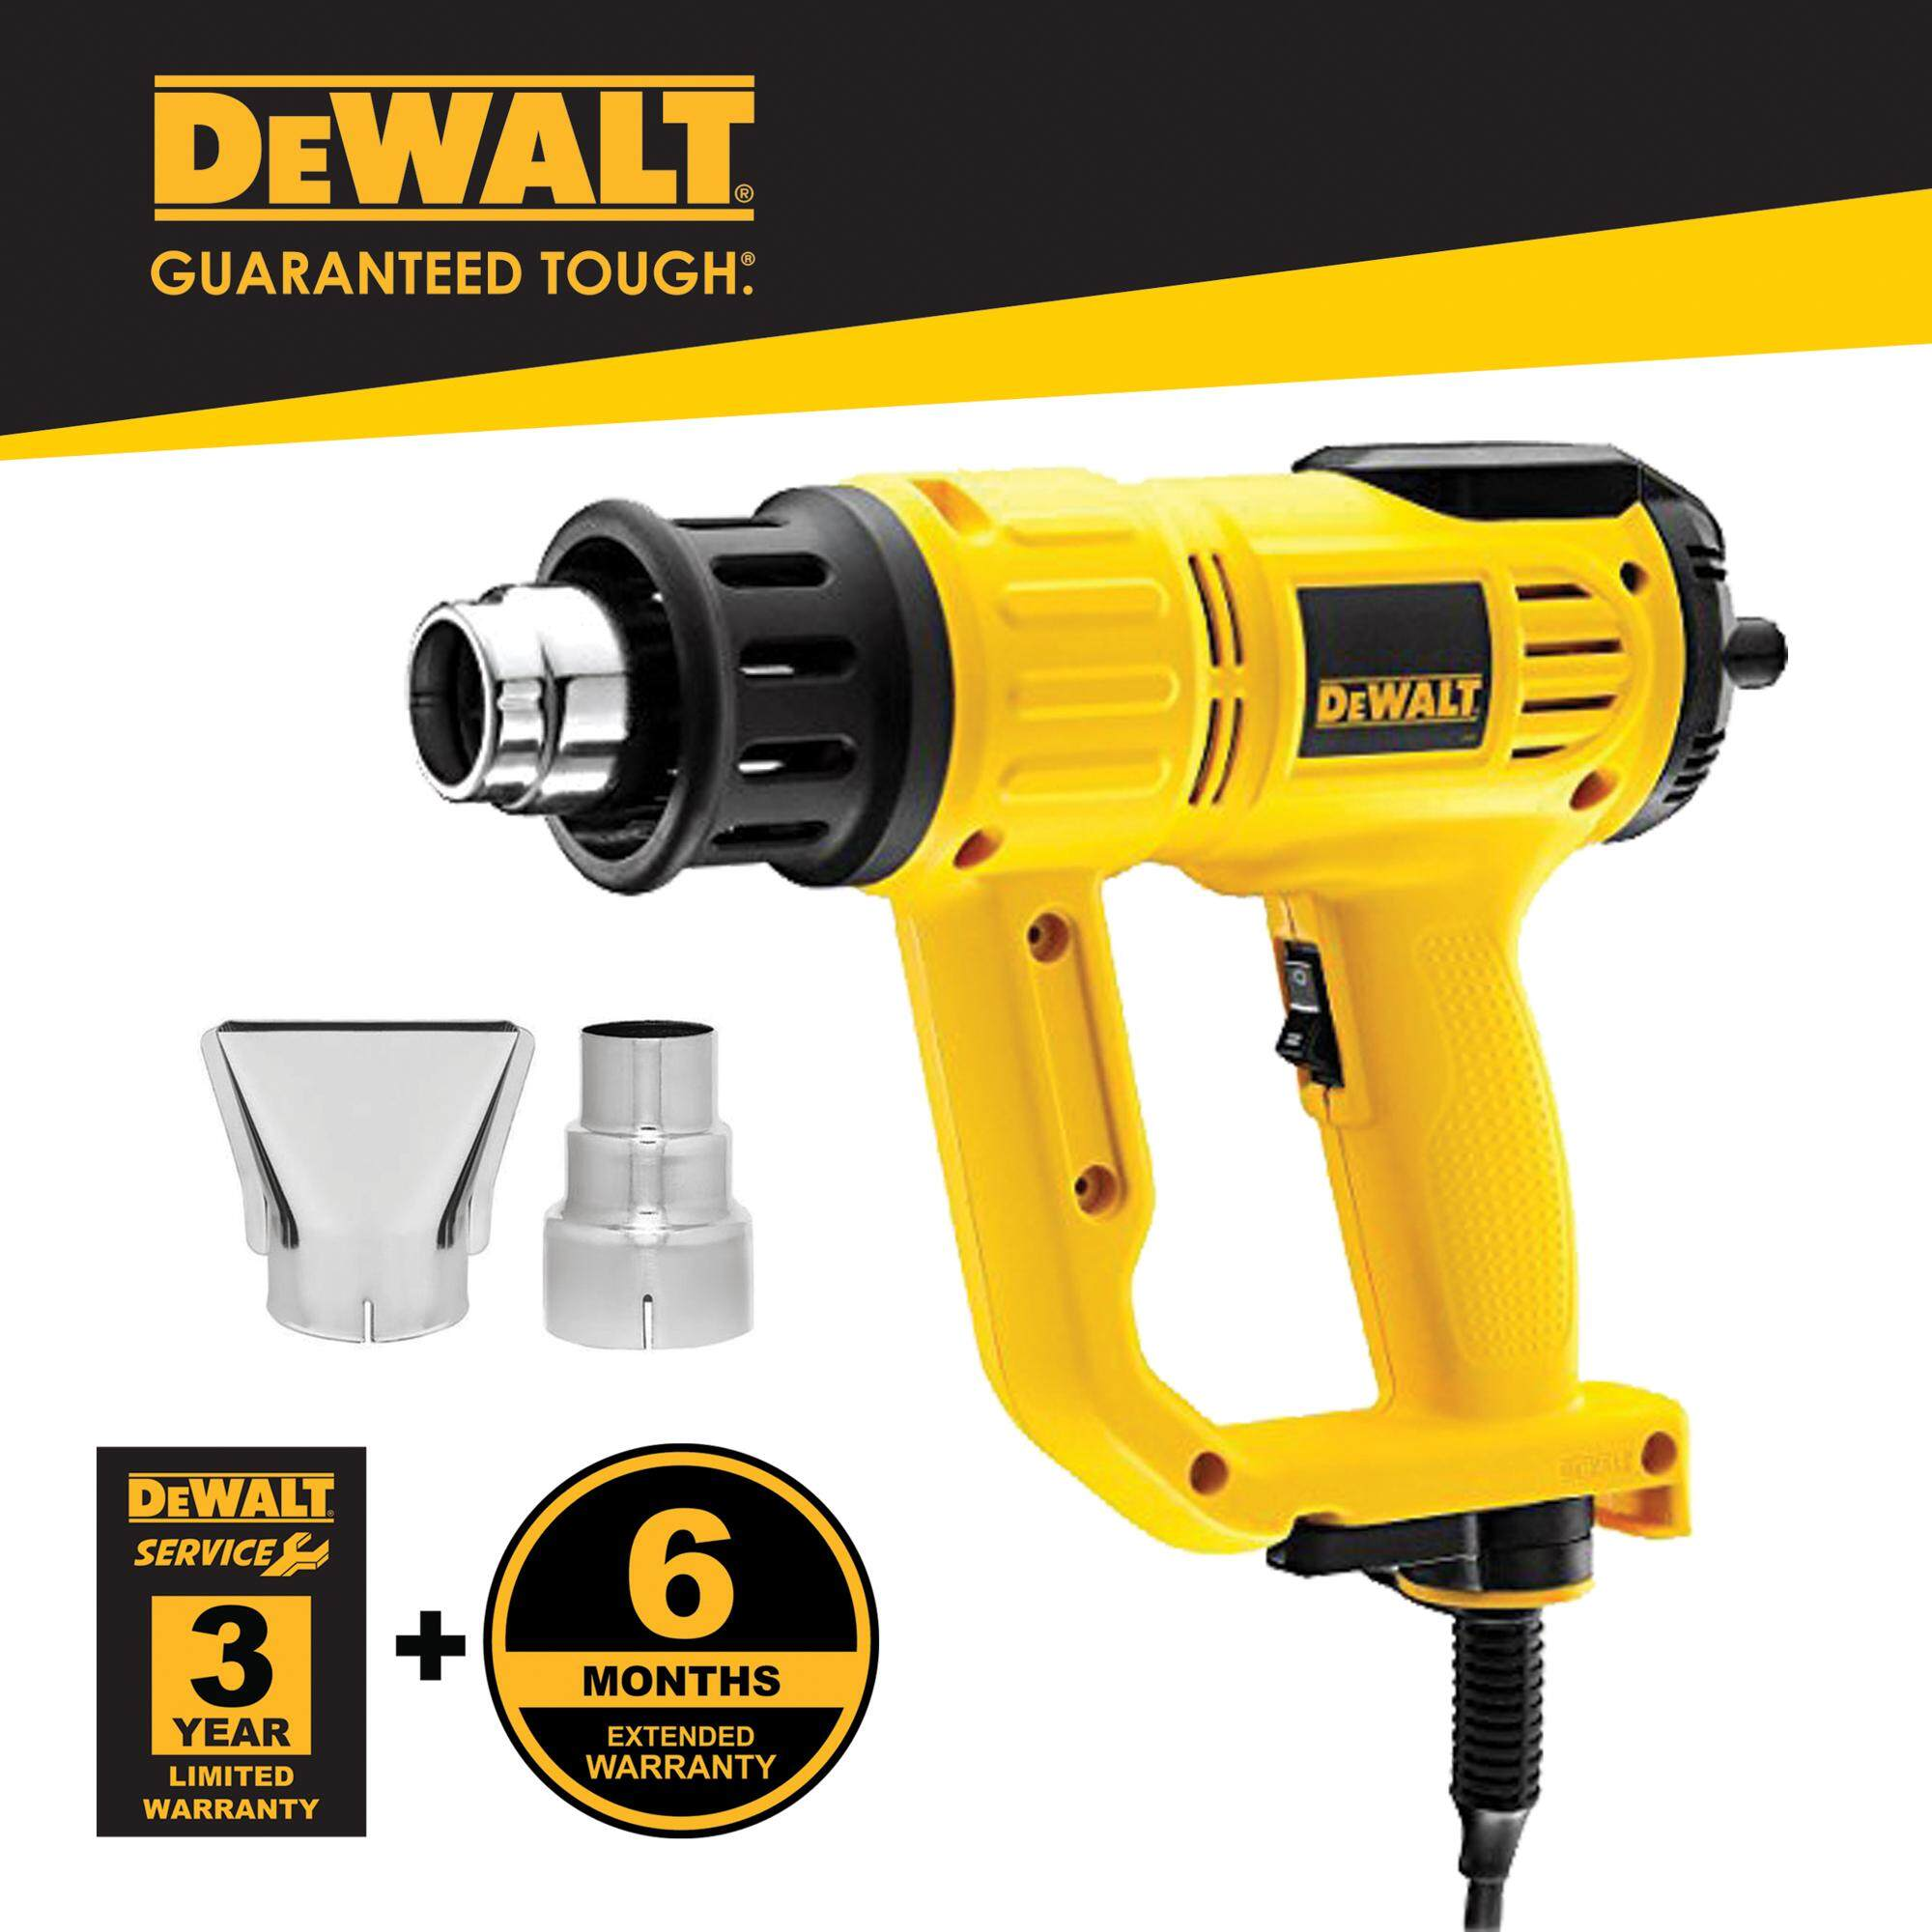 Dewalt D26414-B1 2000W 50 - 630°C Digital Heat Gun With 2pcs Standard Nozzle ( D26414 )